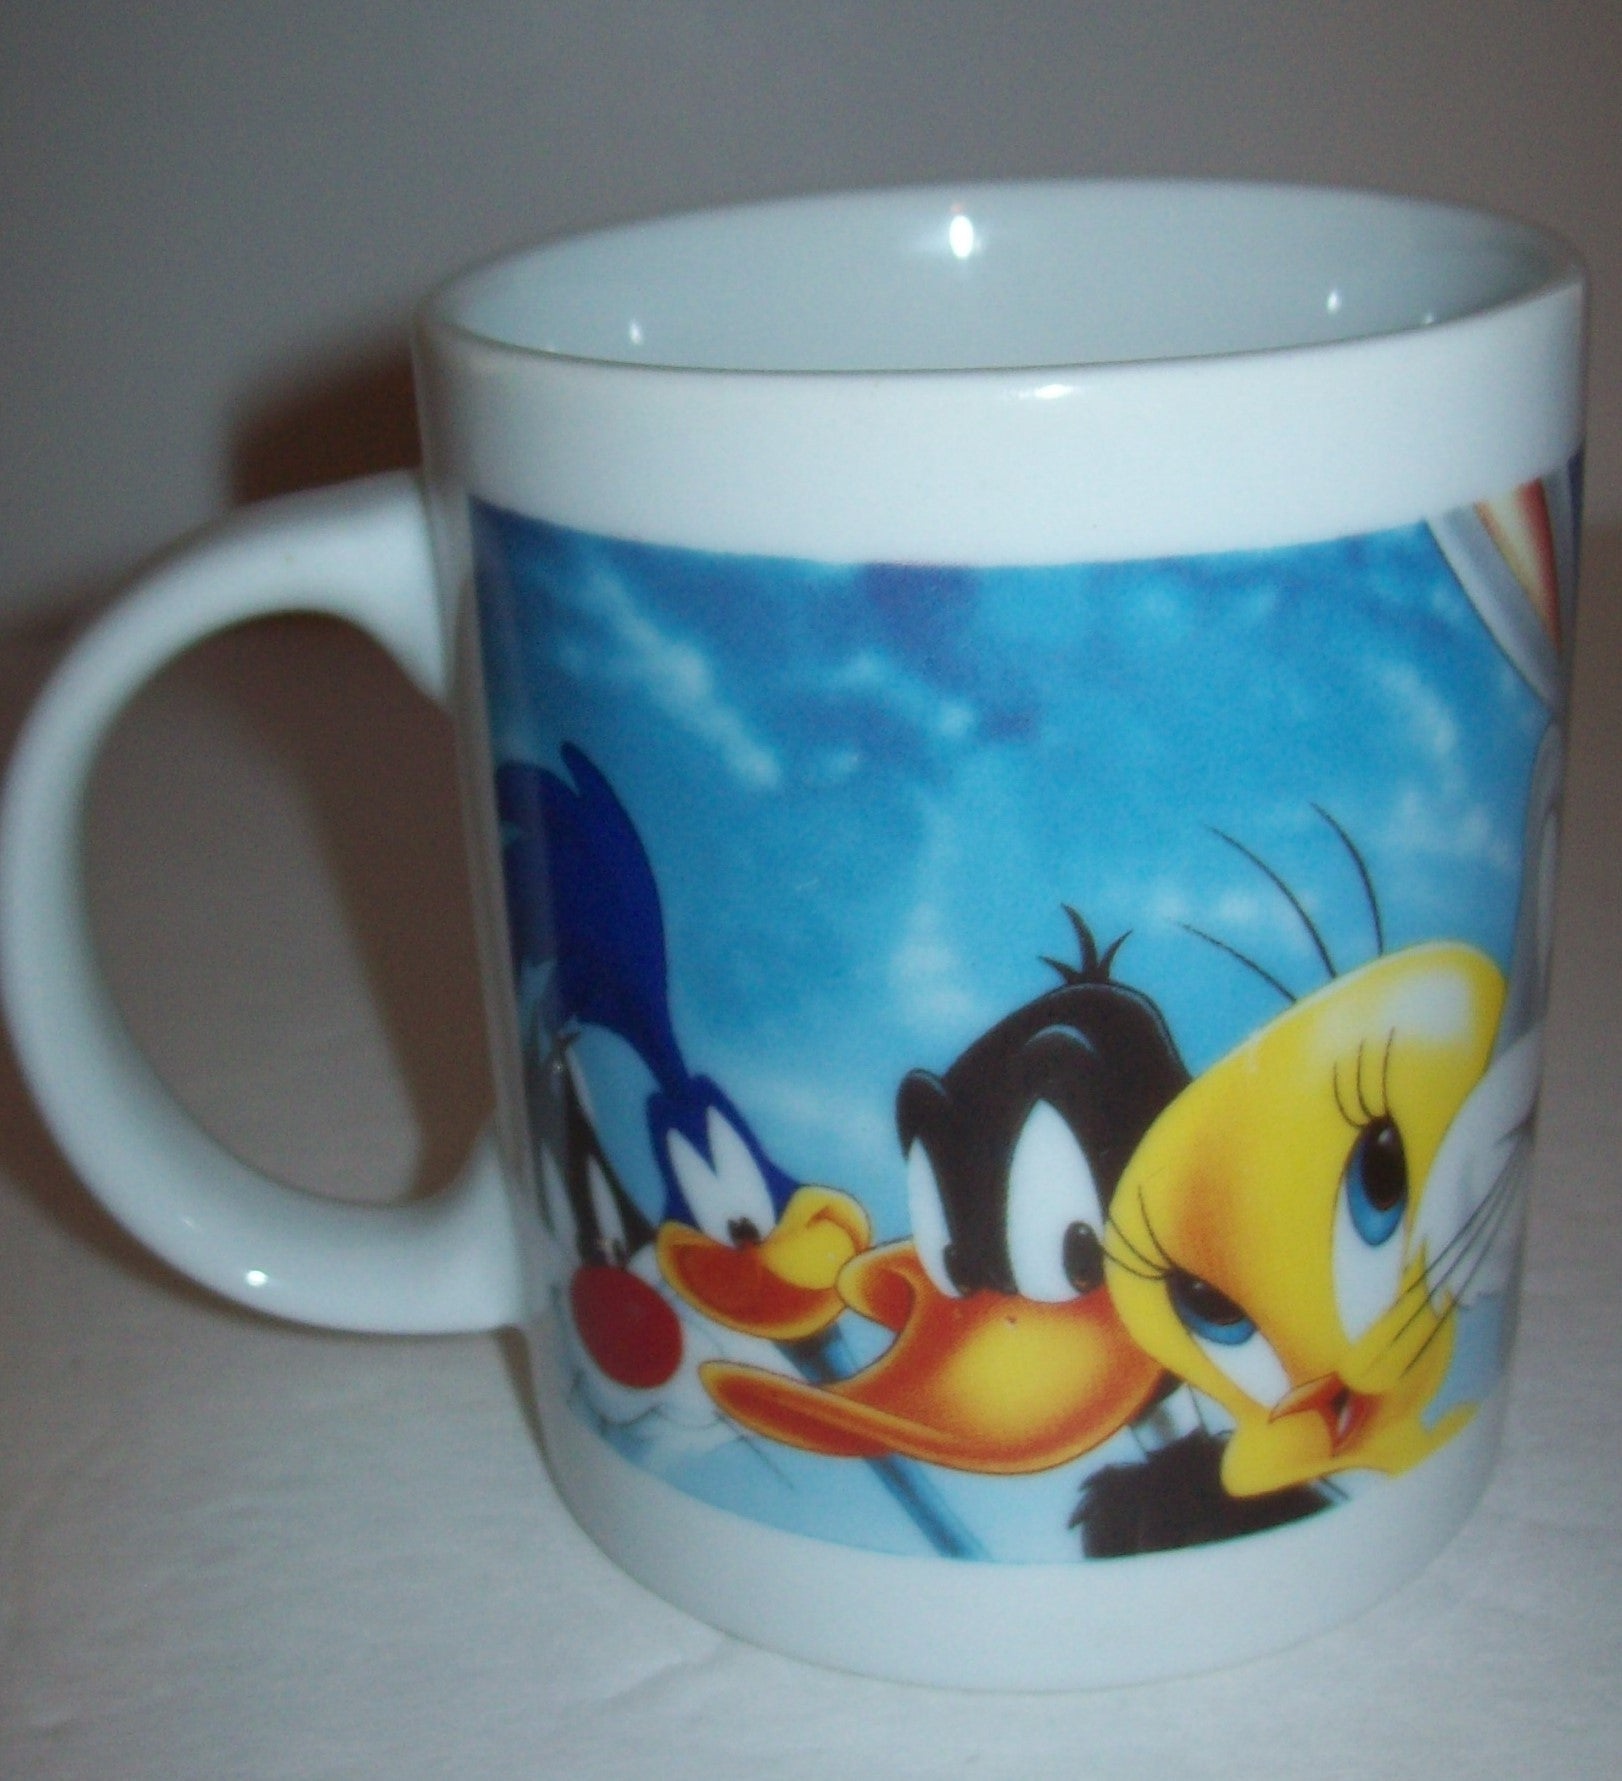 Looney Tunes Character Coffee Cup - We Got Character